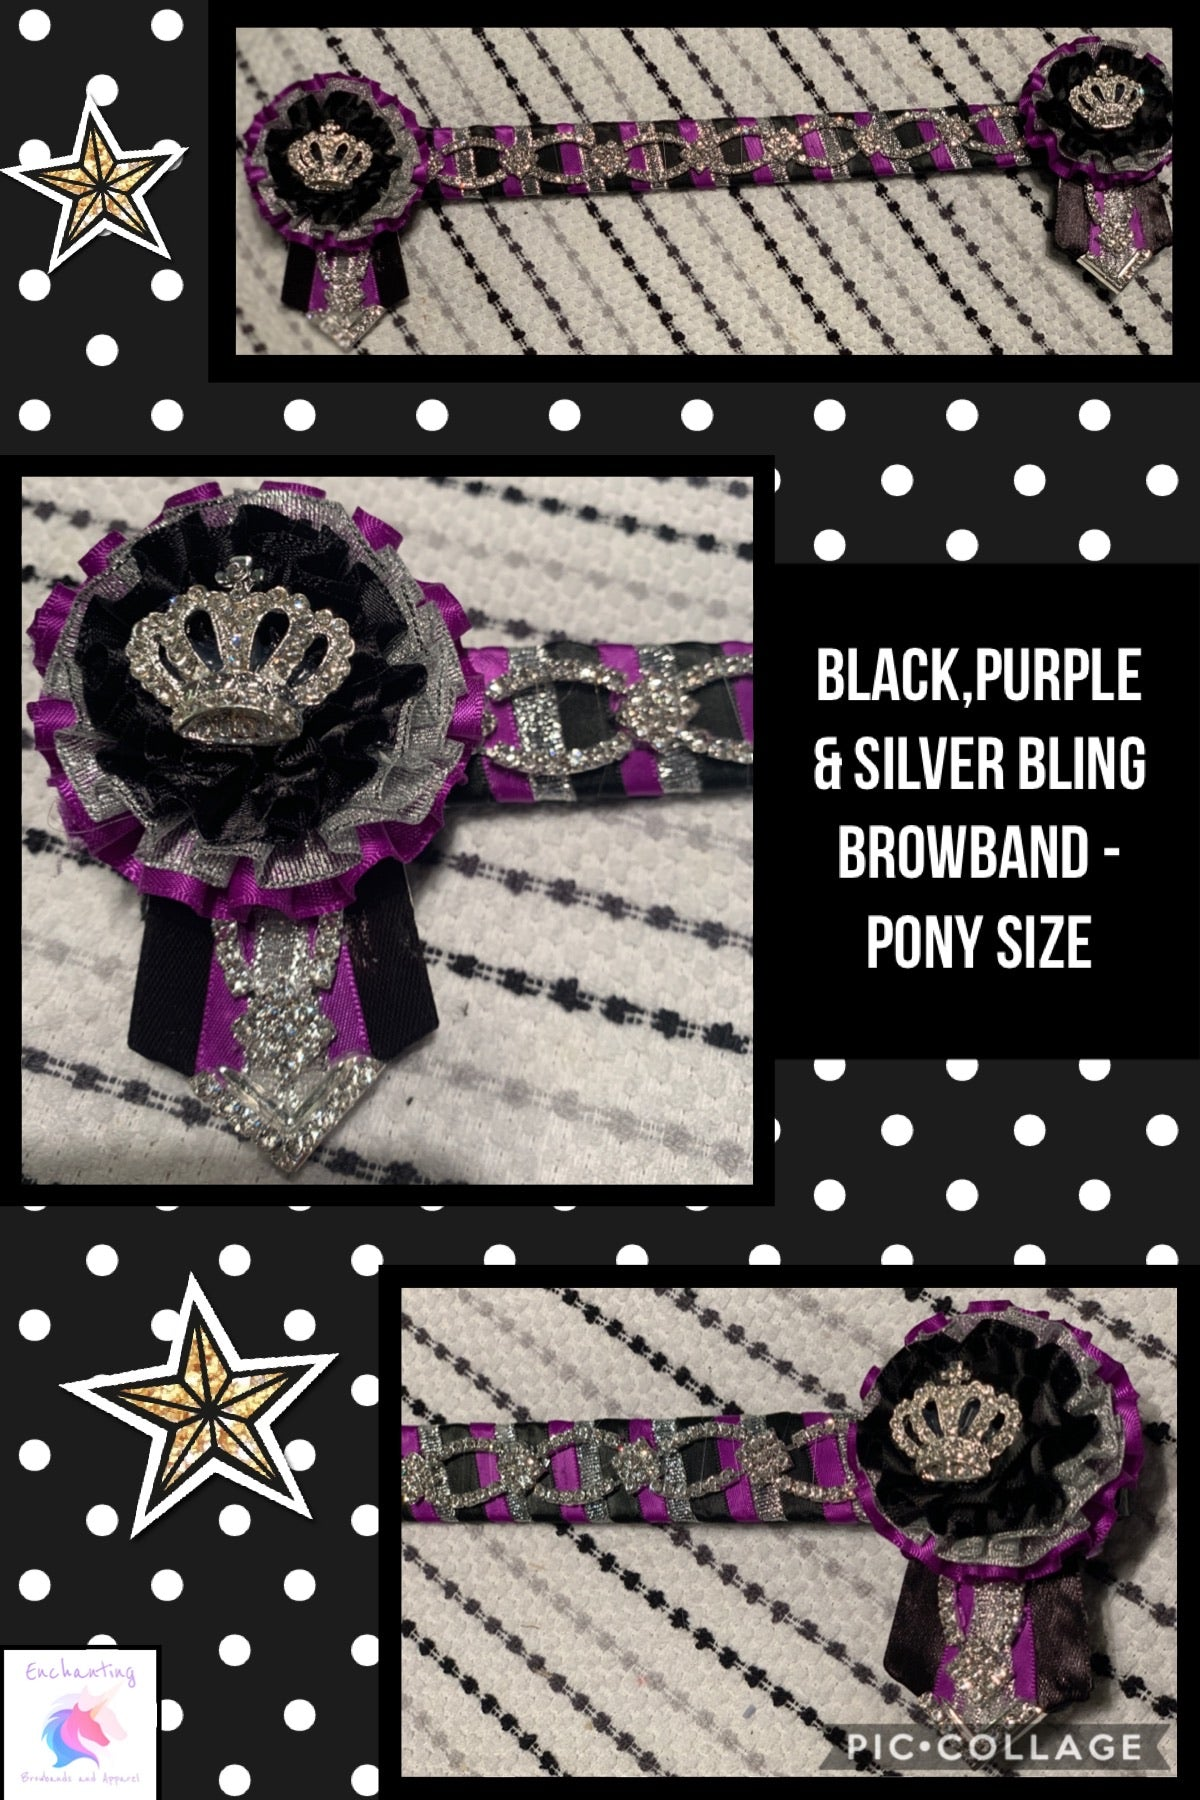 Black,purple & silver bling browband